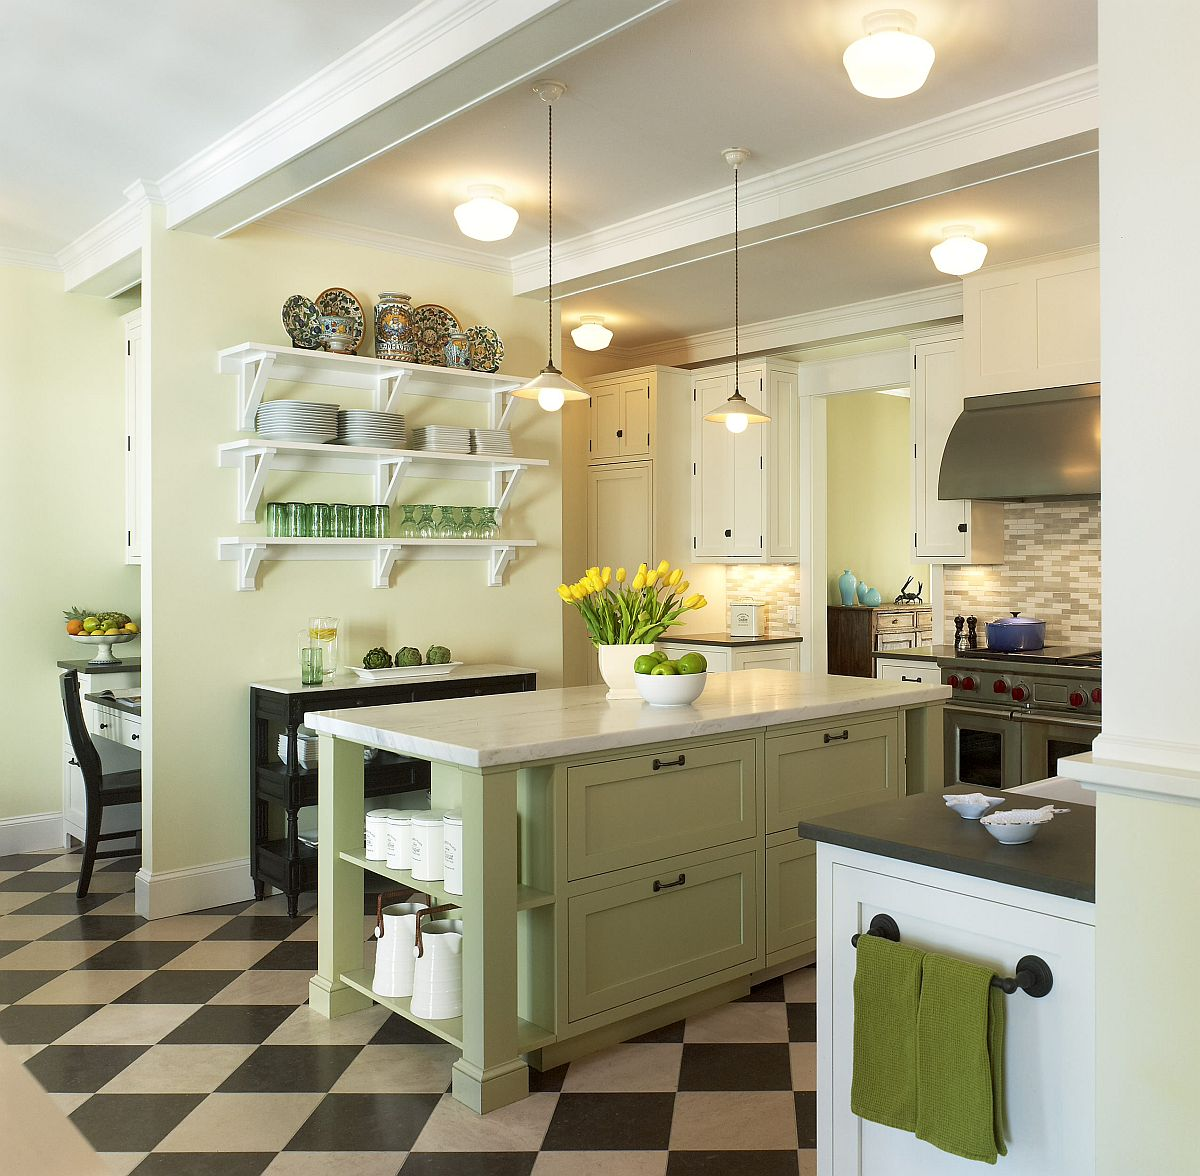 Subtle-use-of-lovely-yellow-and-green-accents-in-modern-cottage-style-kitchen-with-black-and-white-floor-83767